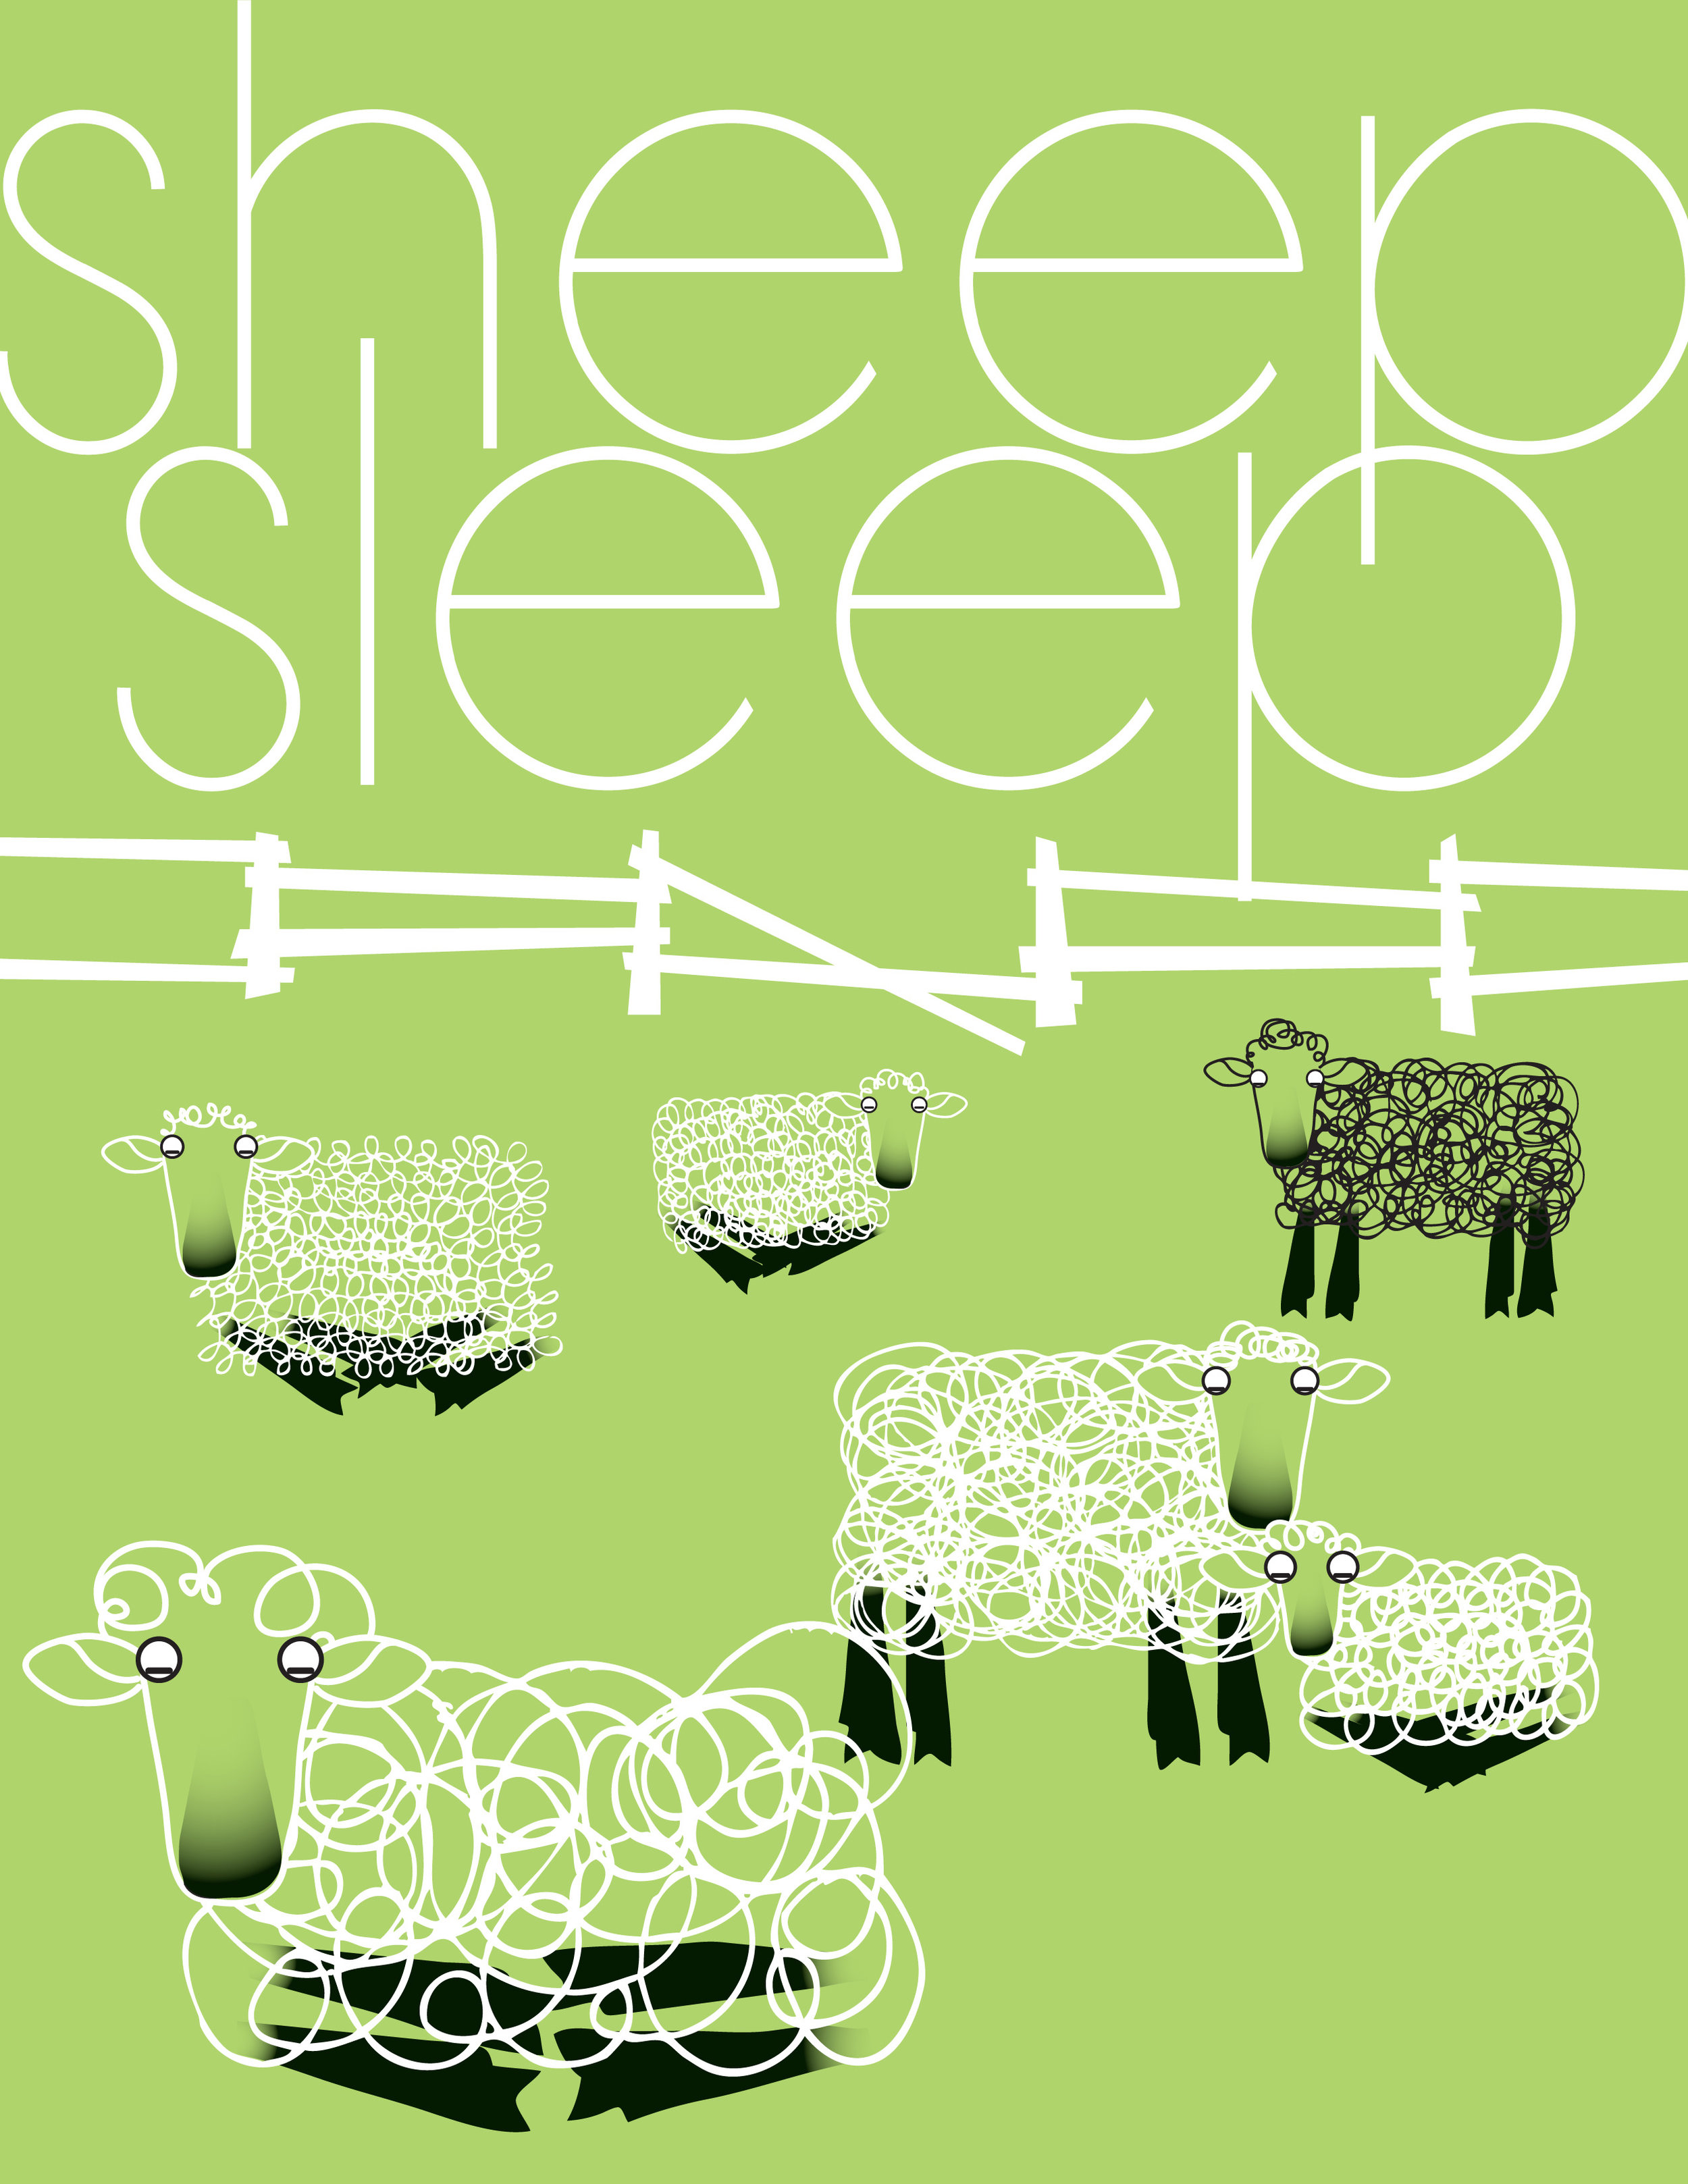 Sheep Sleep Book 2-2.jpg